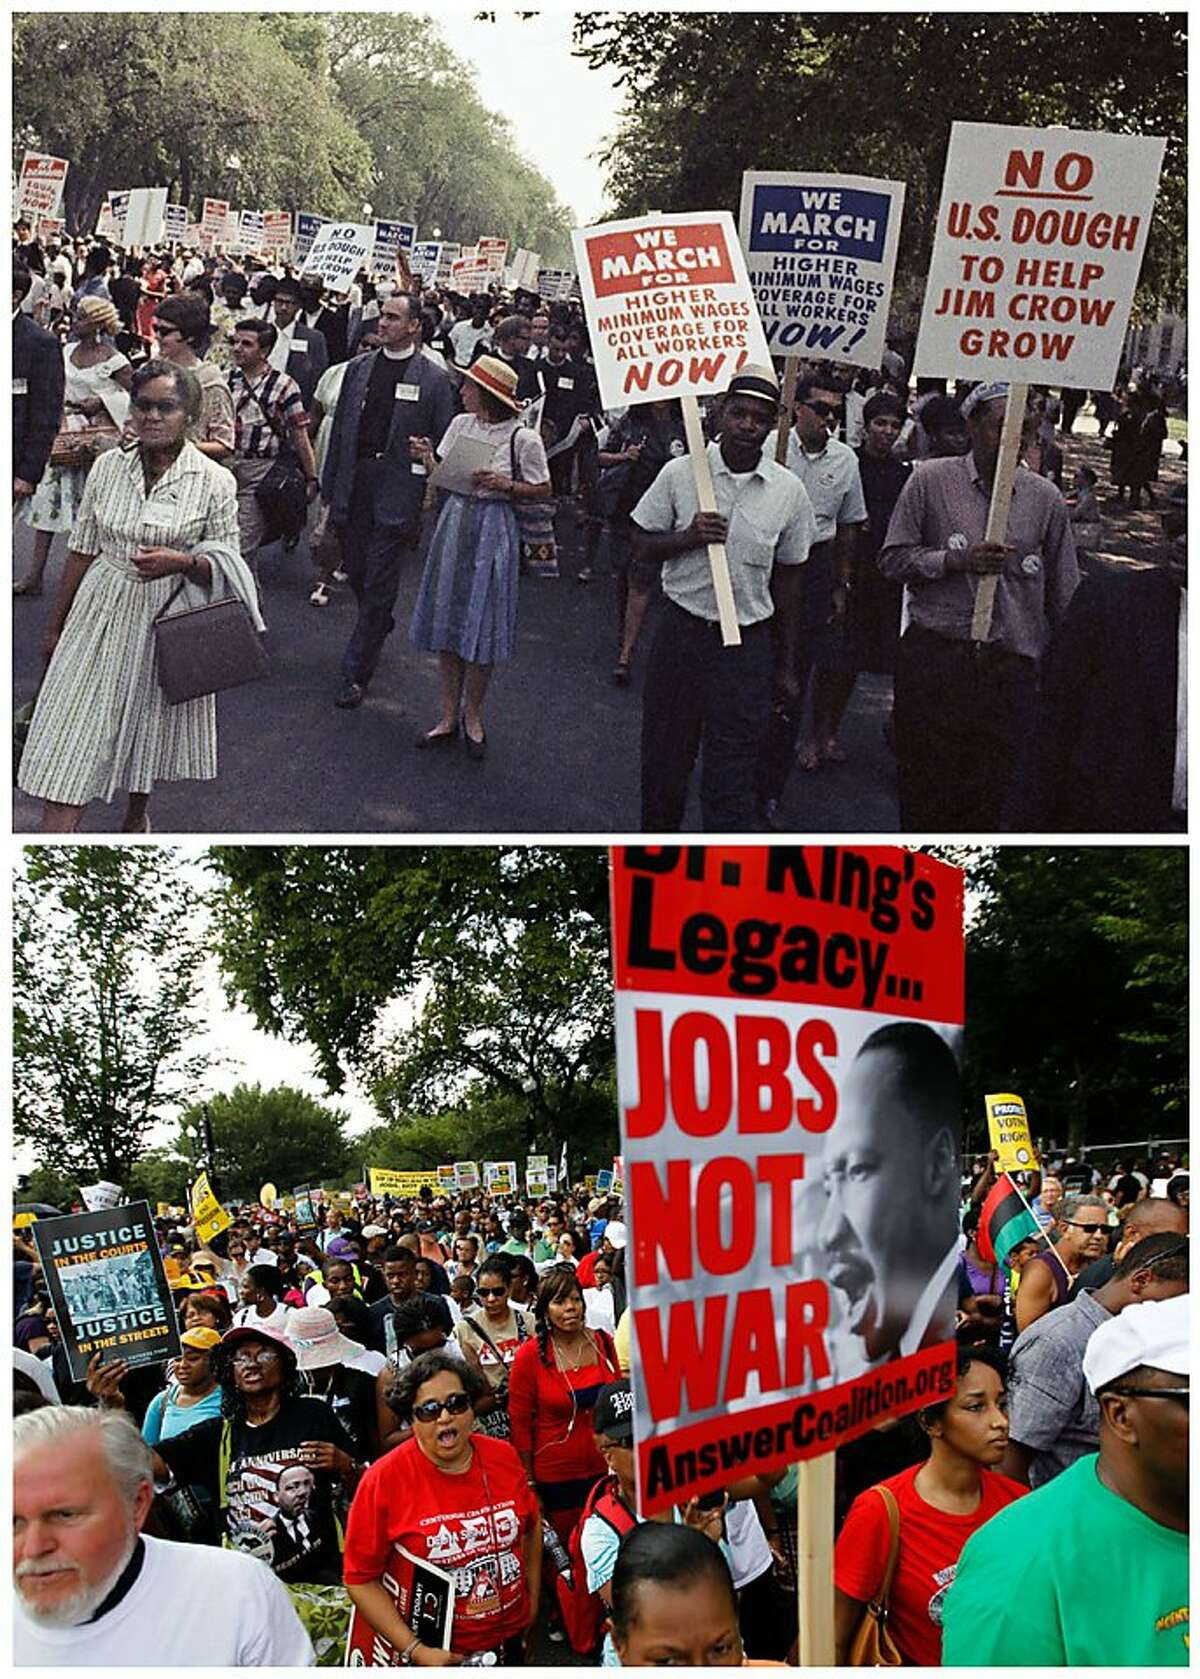 In this combination of Associated Press file photos, at top, a large crowd marches for civil rights in Washington on Aug. 28, 1963; and at bottom, demonstrators march towards the Martin Luther King Junior Memorial during a rally to commemorate the 50th anniversary of the 1963 march on Saturday, Aug. 24, 2013. Aging veterans of the original March on Washington gathered with younger generations Saturday amassing a crowd that in contrast was more female, more Hispanic, and more diverse by sexual orientation than in 1963. (AP Photo/File)